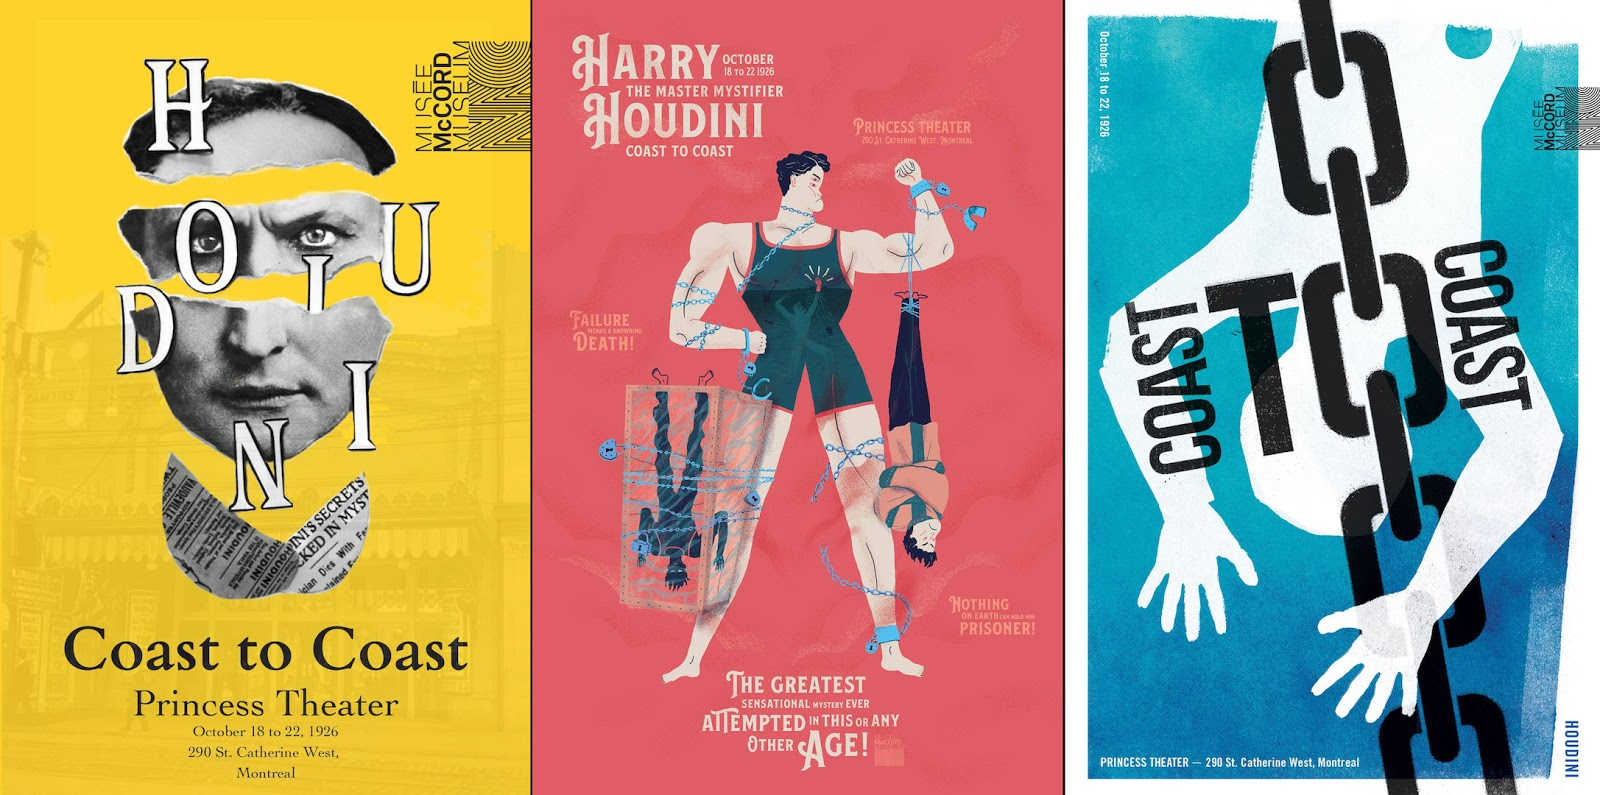 WILD ABOUT HARRY: Winner of the McCord\'s Houdini poster contest